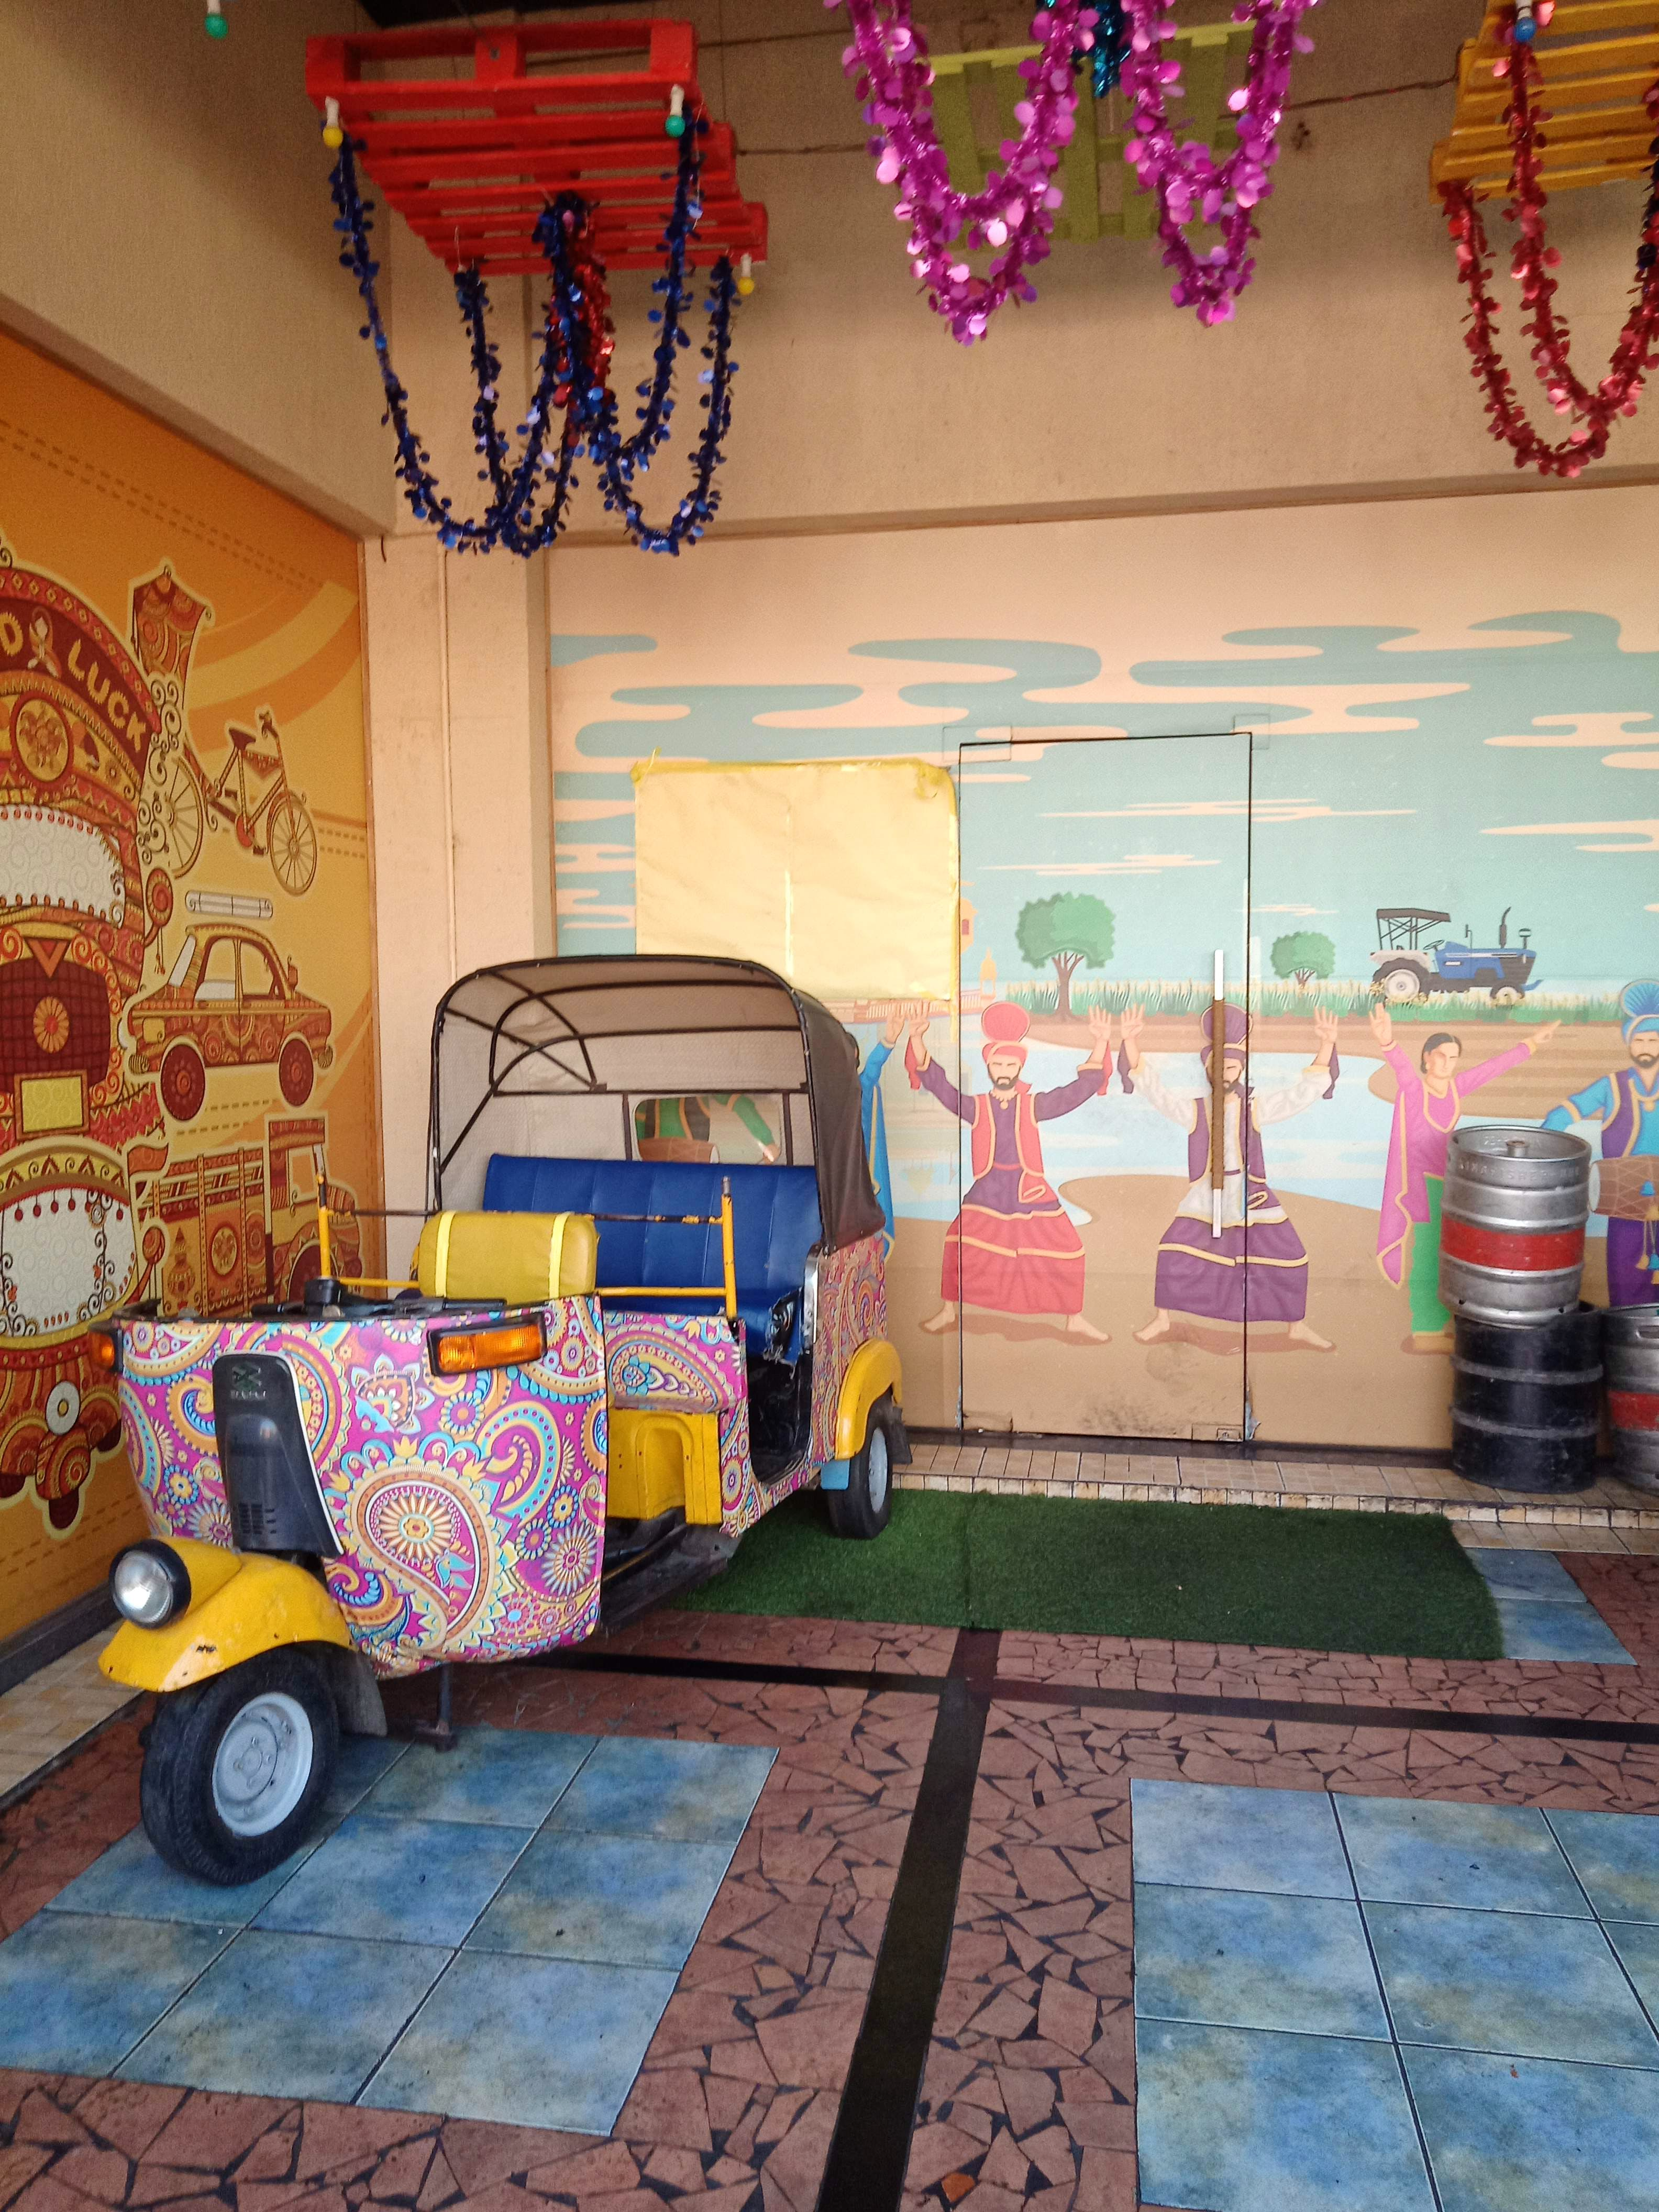 Check Out This Vibrant Rooftop Restaurant With Quirky selfie Zones!